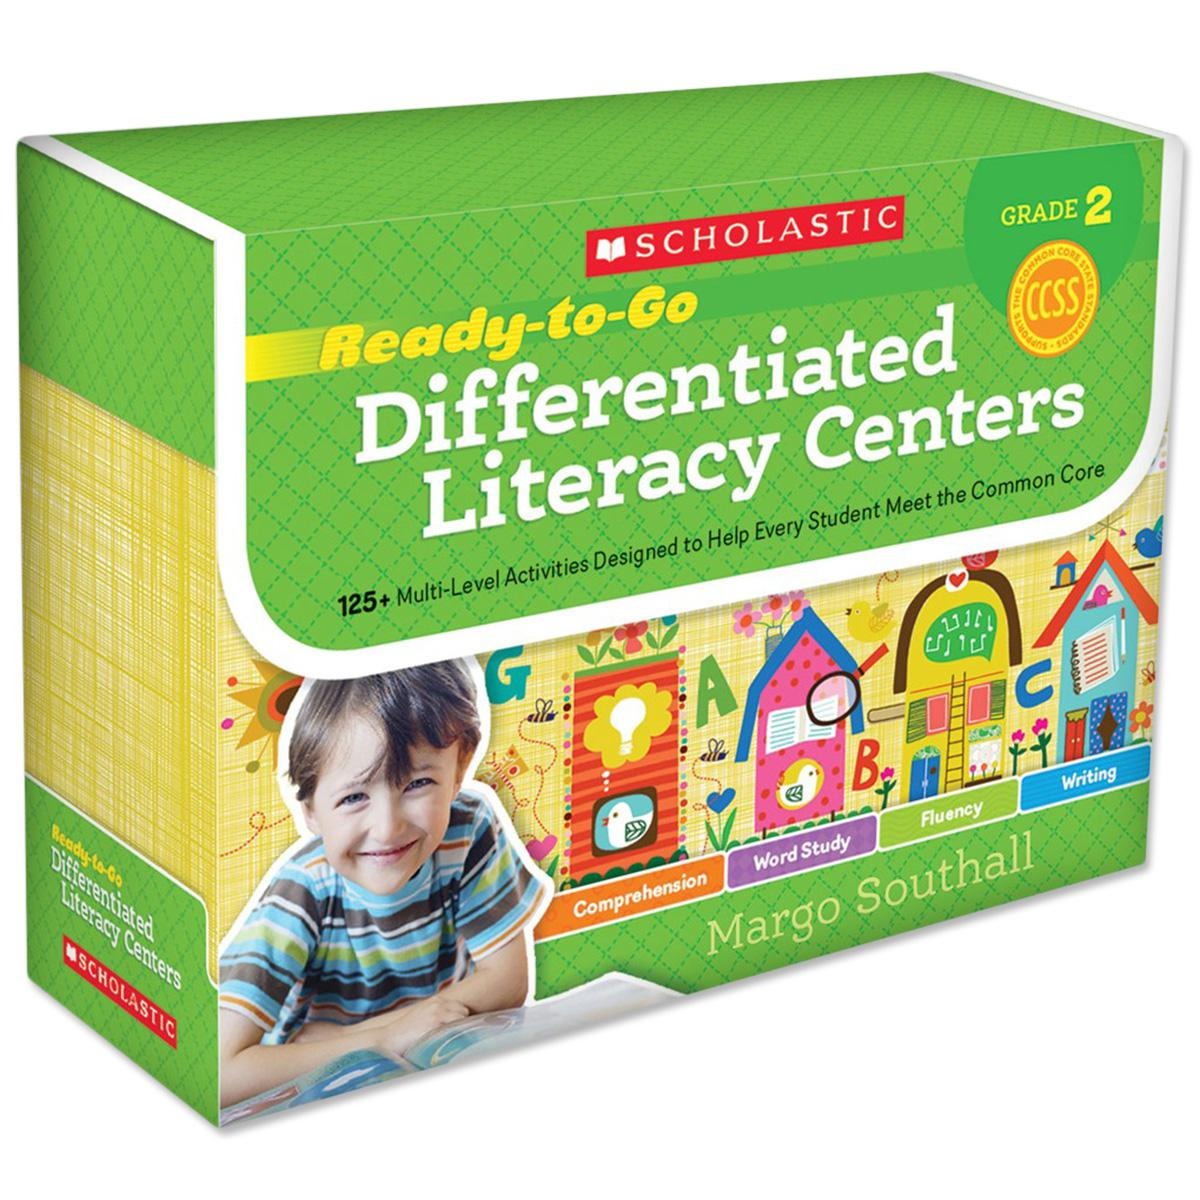 Ready-to-Go Differentiated Learning Centers Grade 2